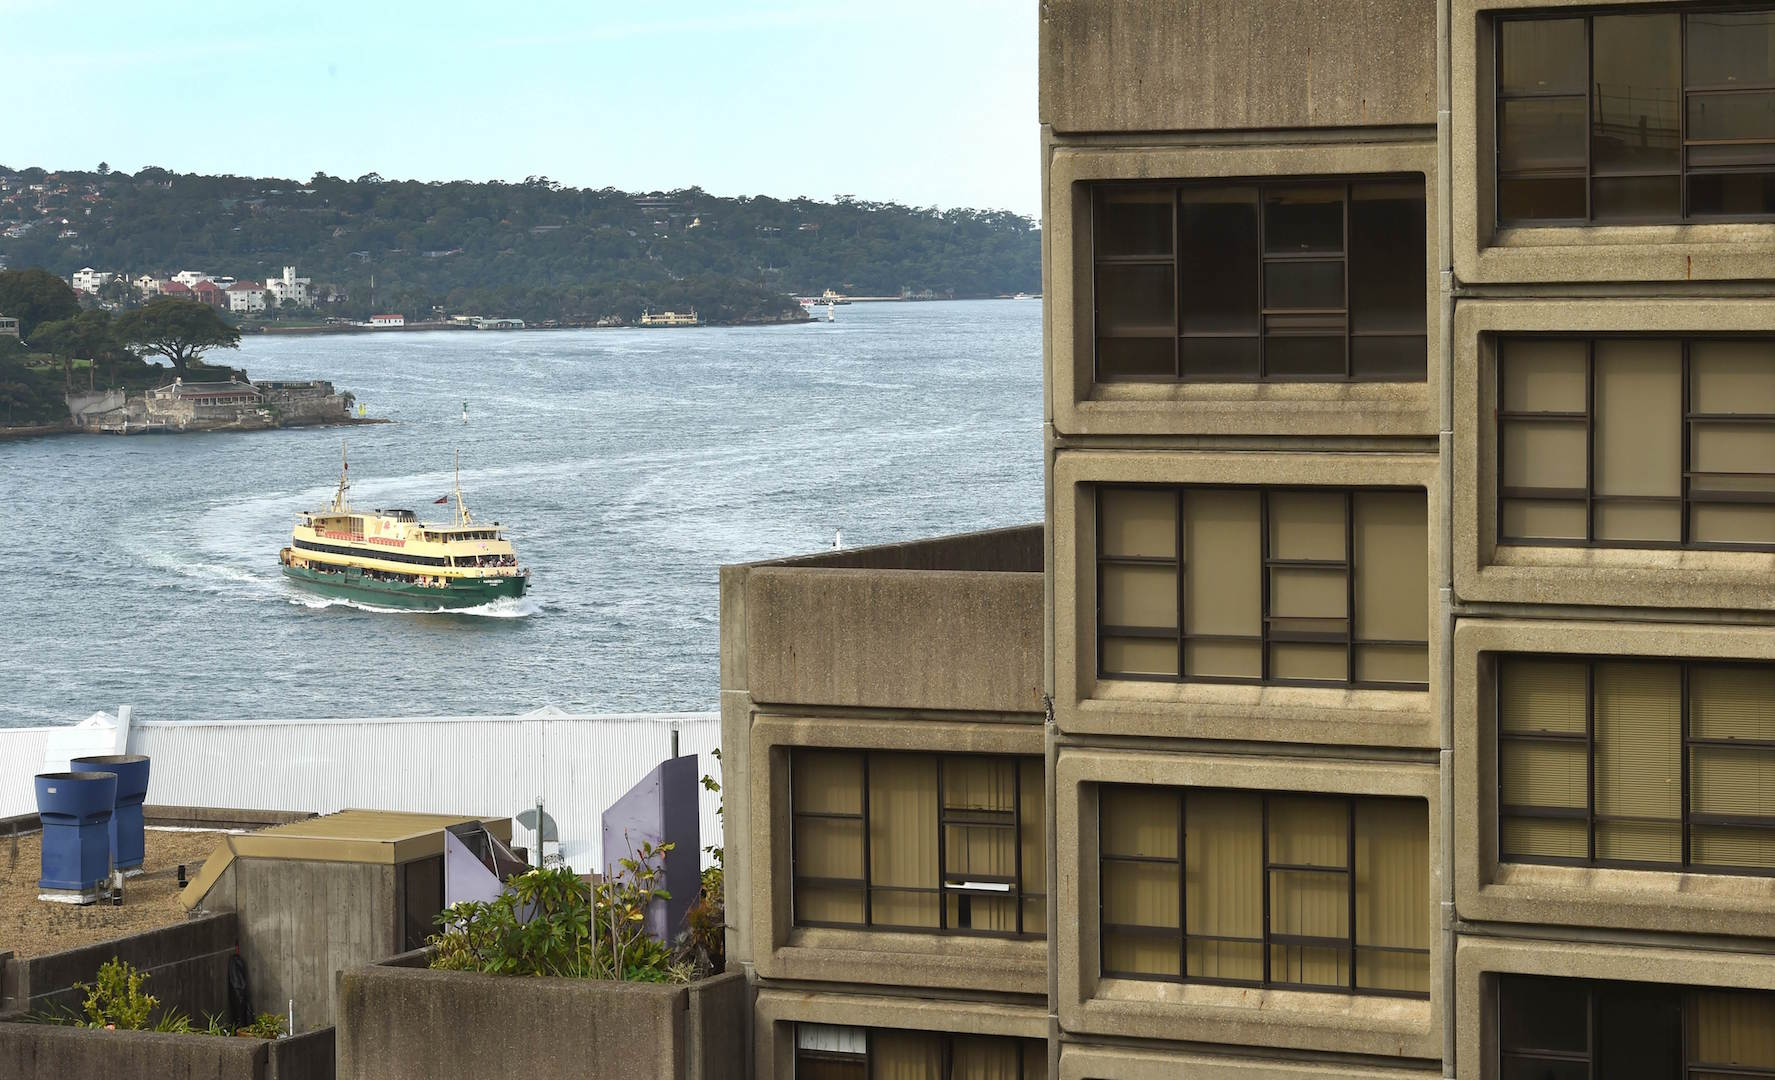 Gentrification, the death of Sydney and the Parisian solution